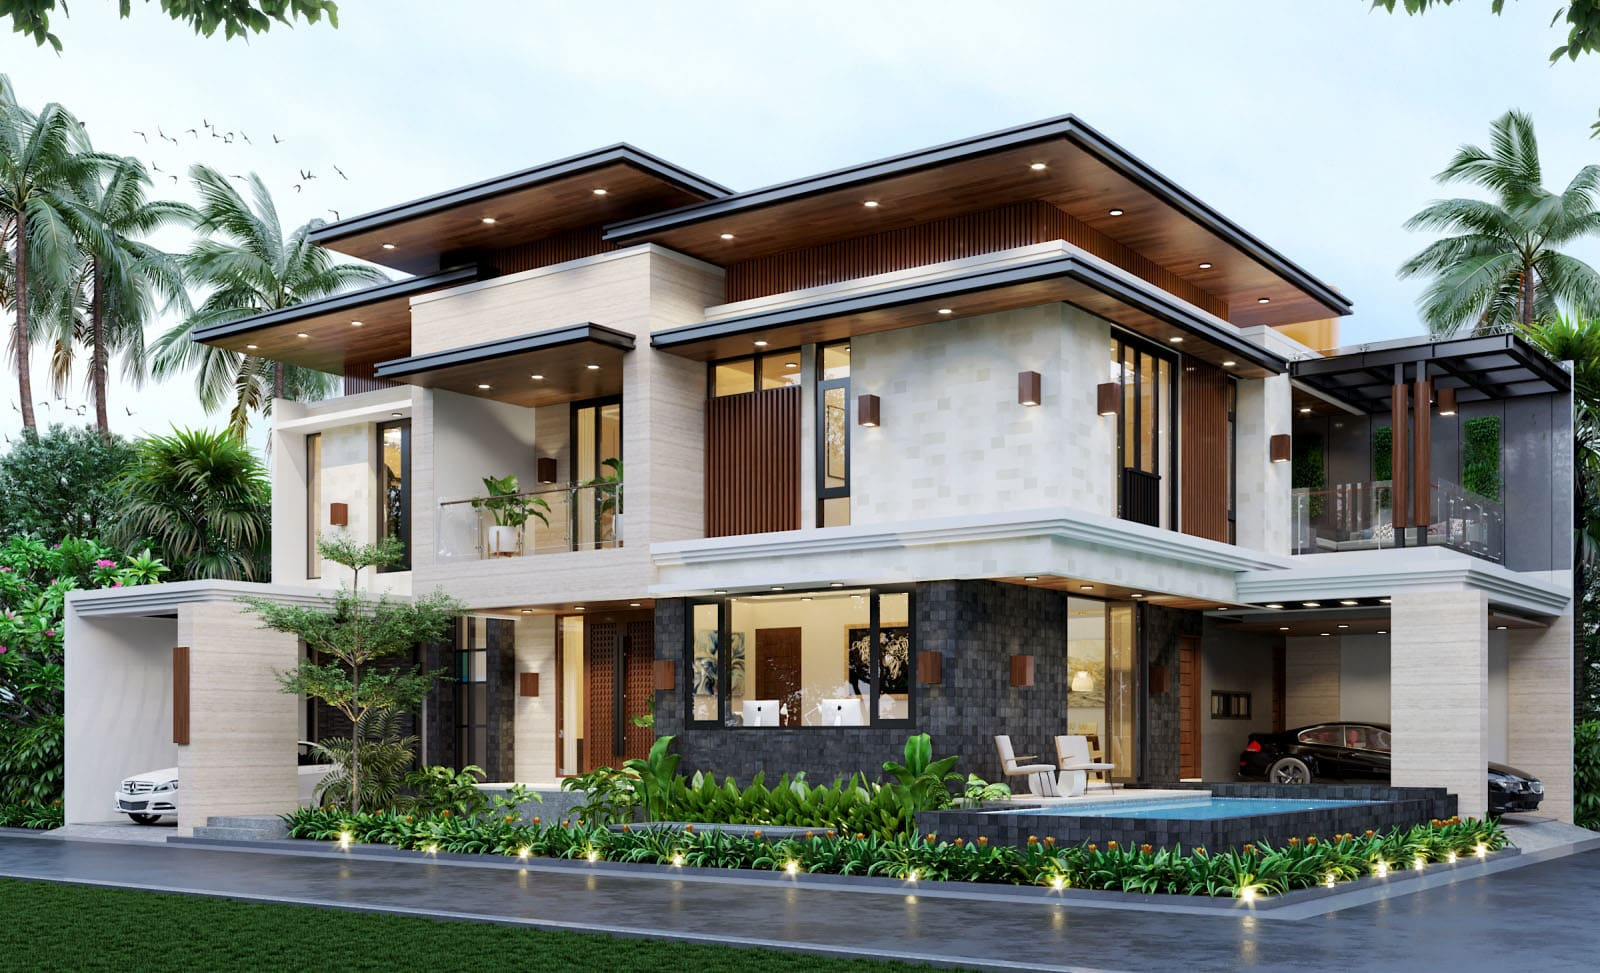 Design And Render Realistic Exterior And Interior Design By Lumion 3ds Max Vray By Nolan19